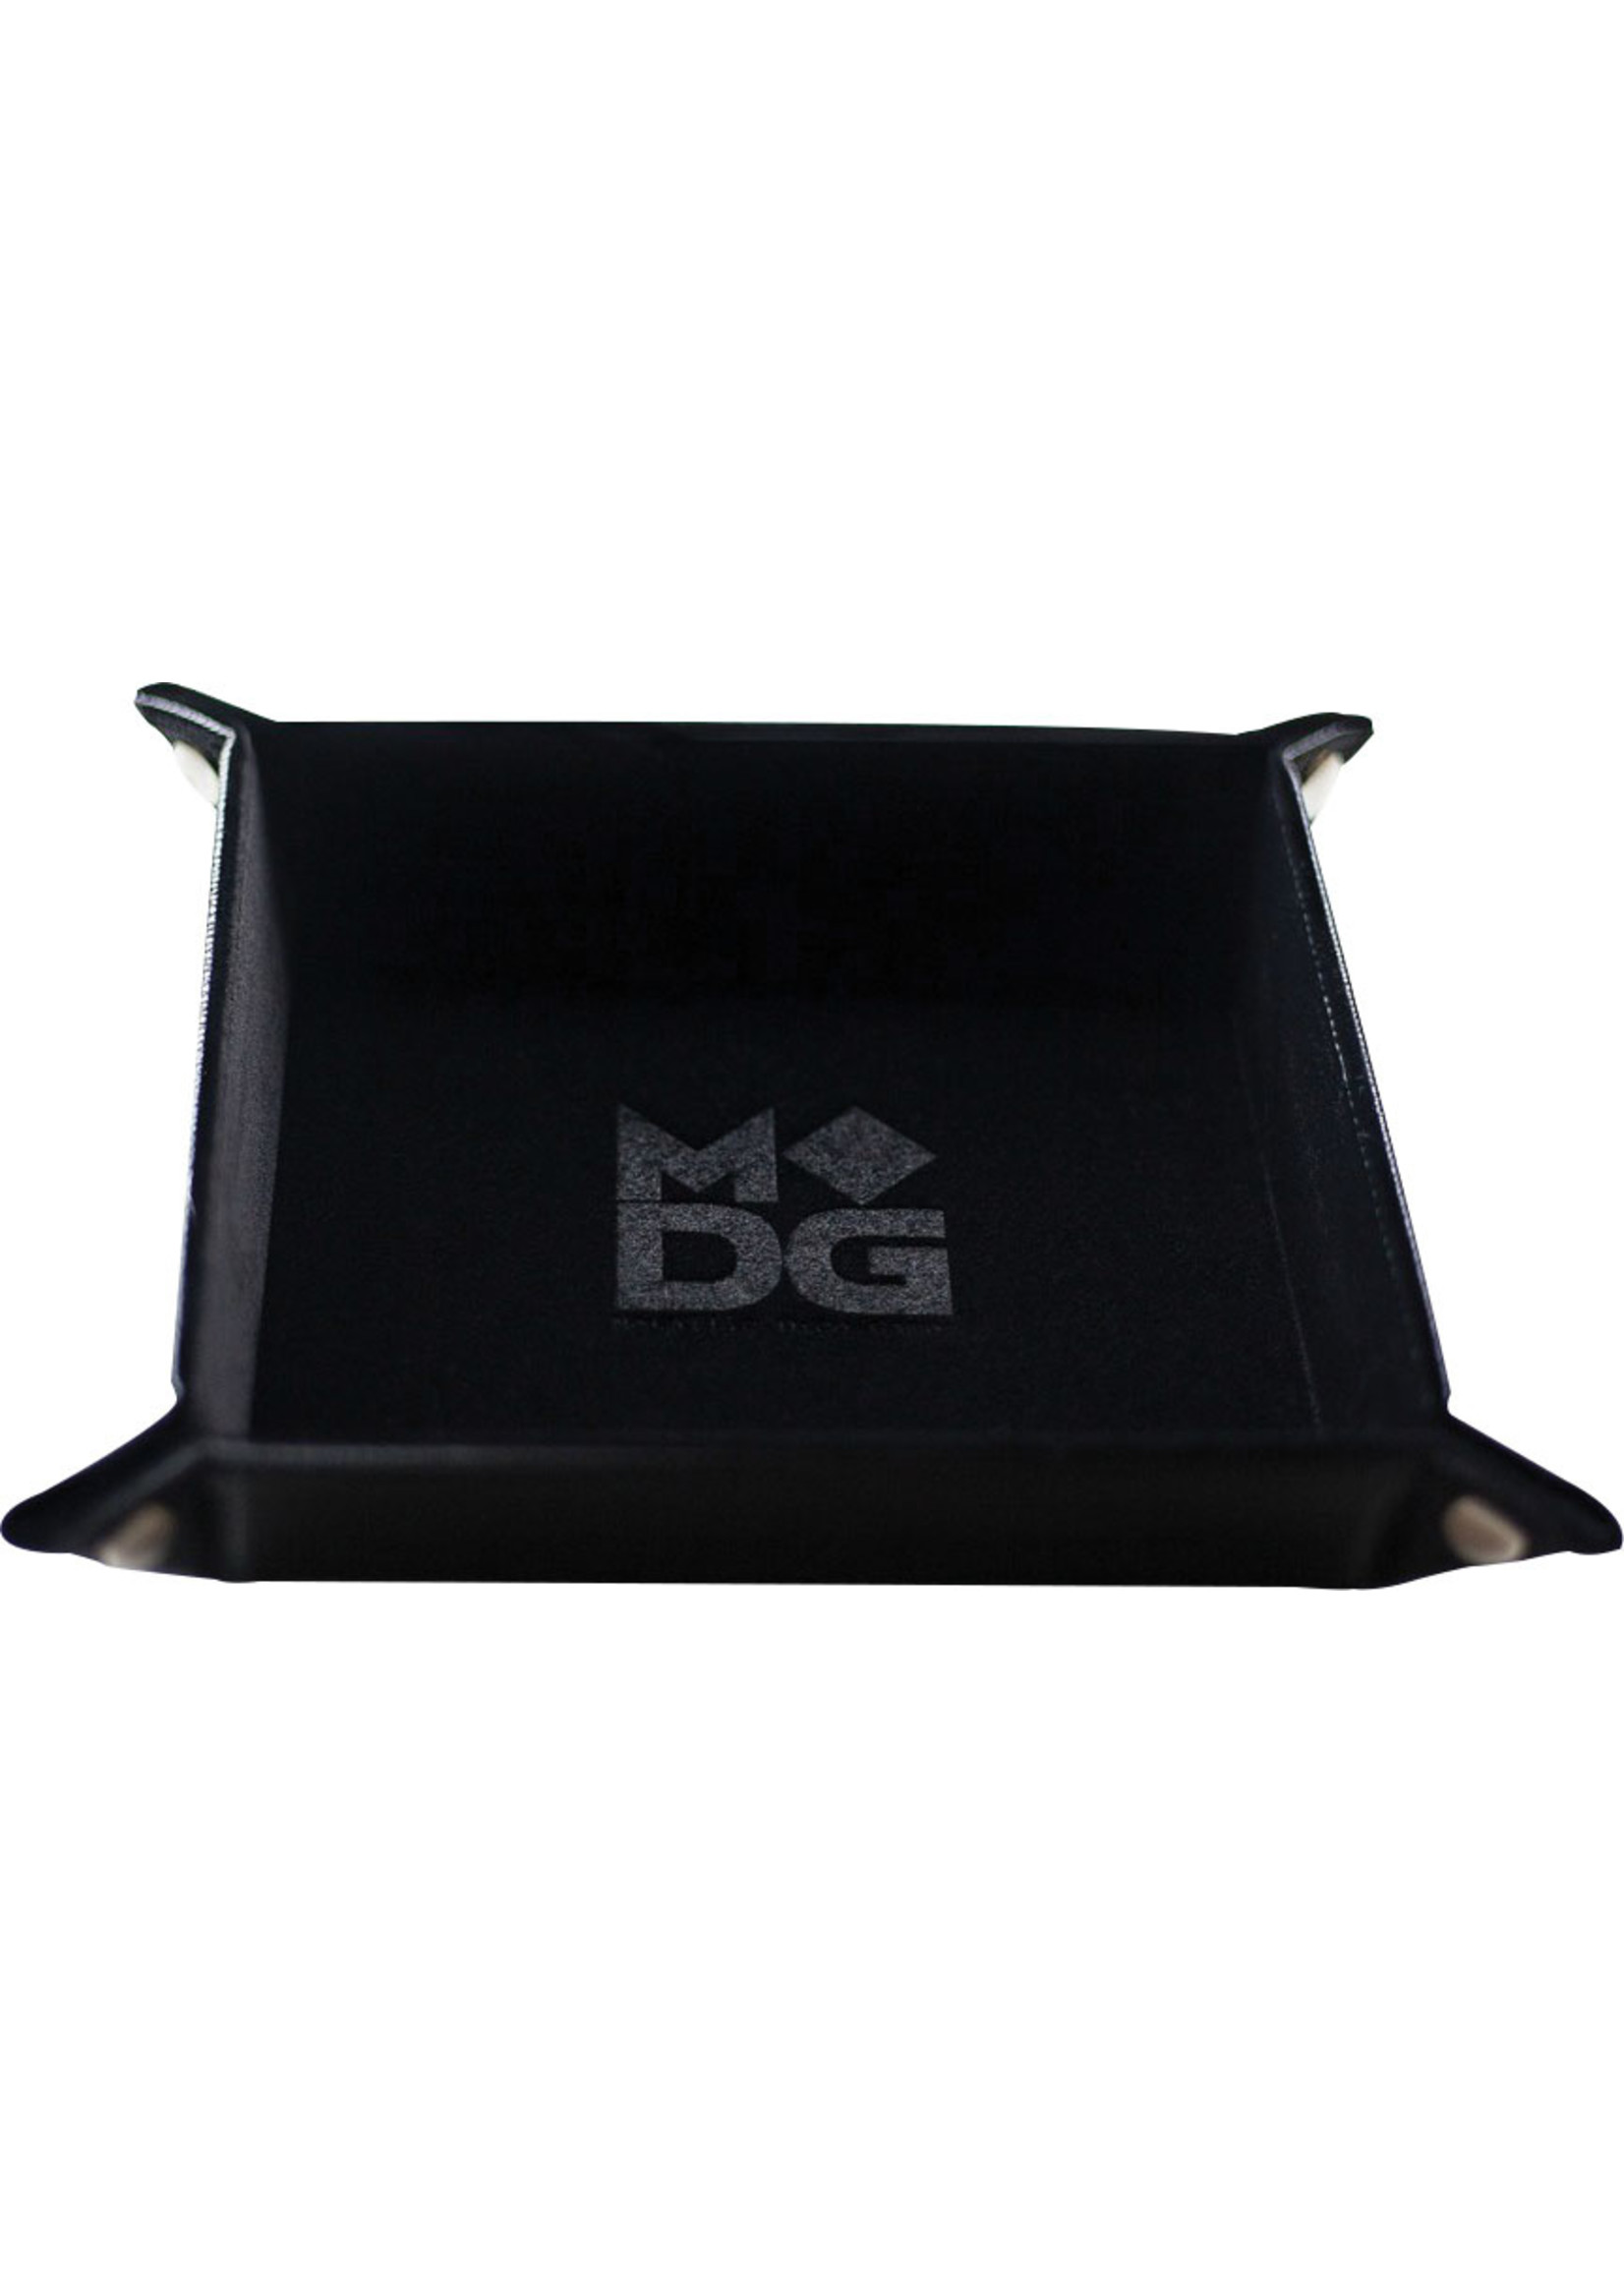 Black Velvet Folding Dice Tray with Leather Backing